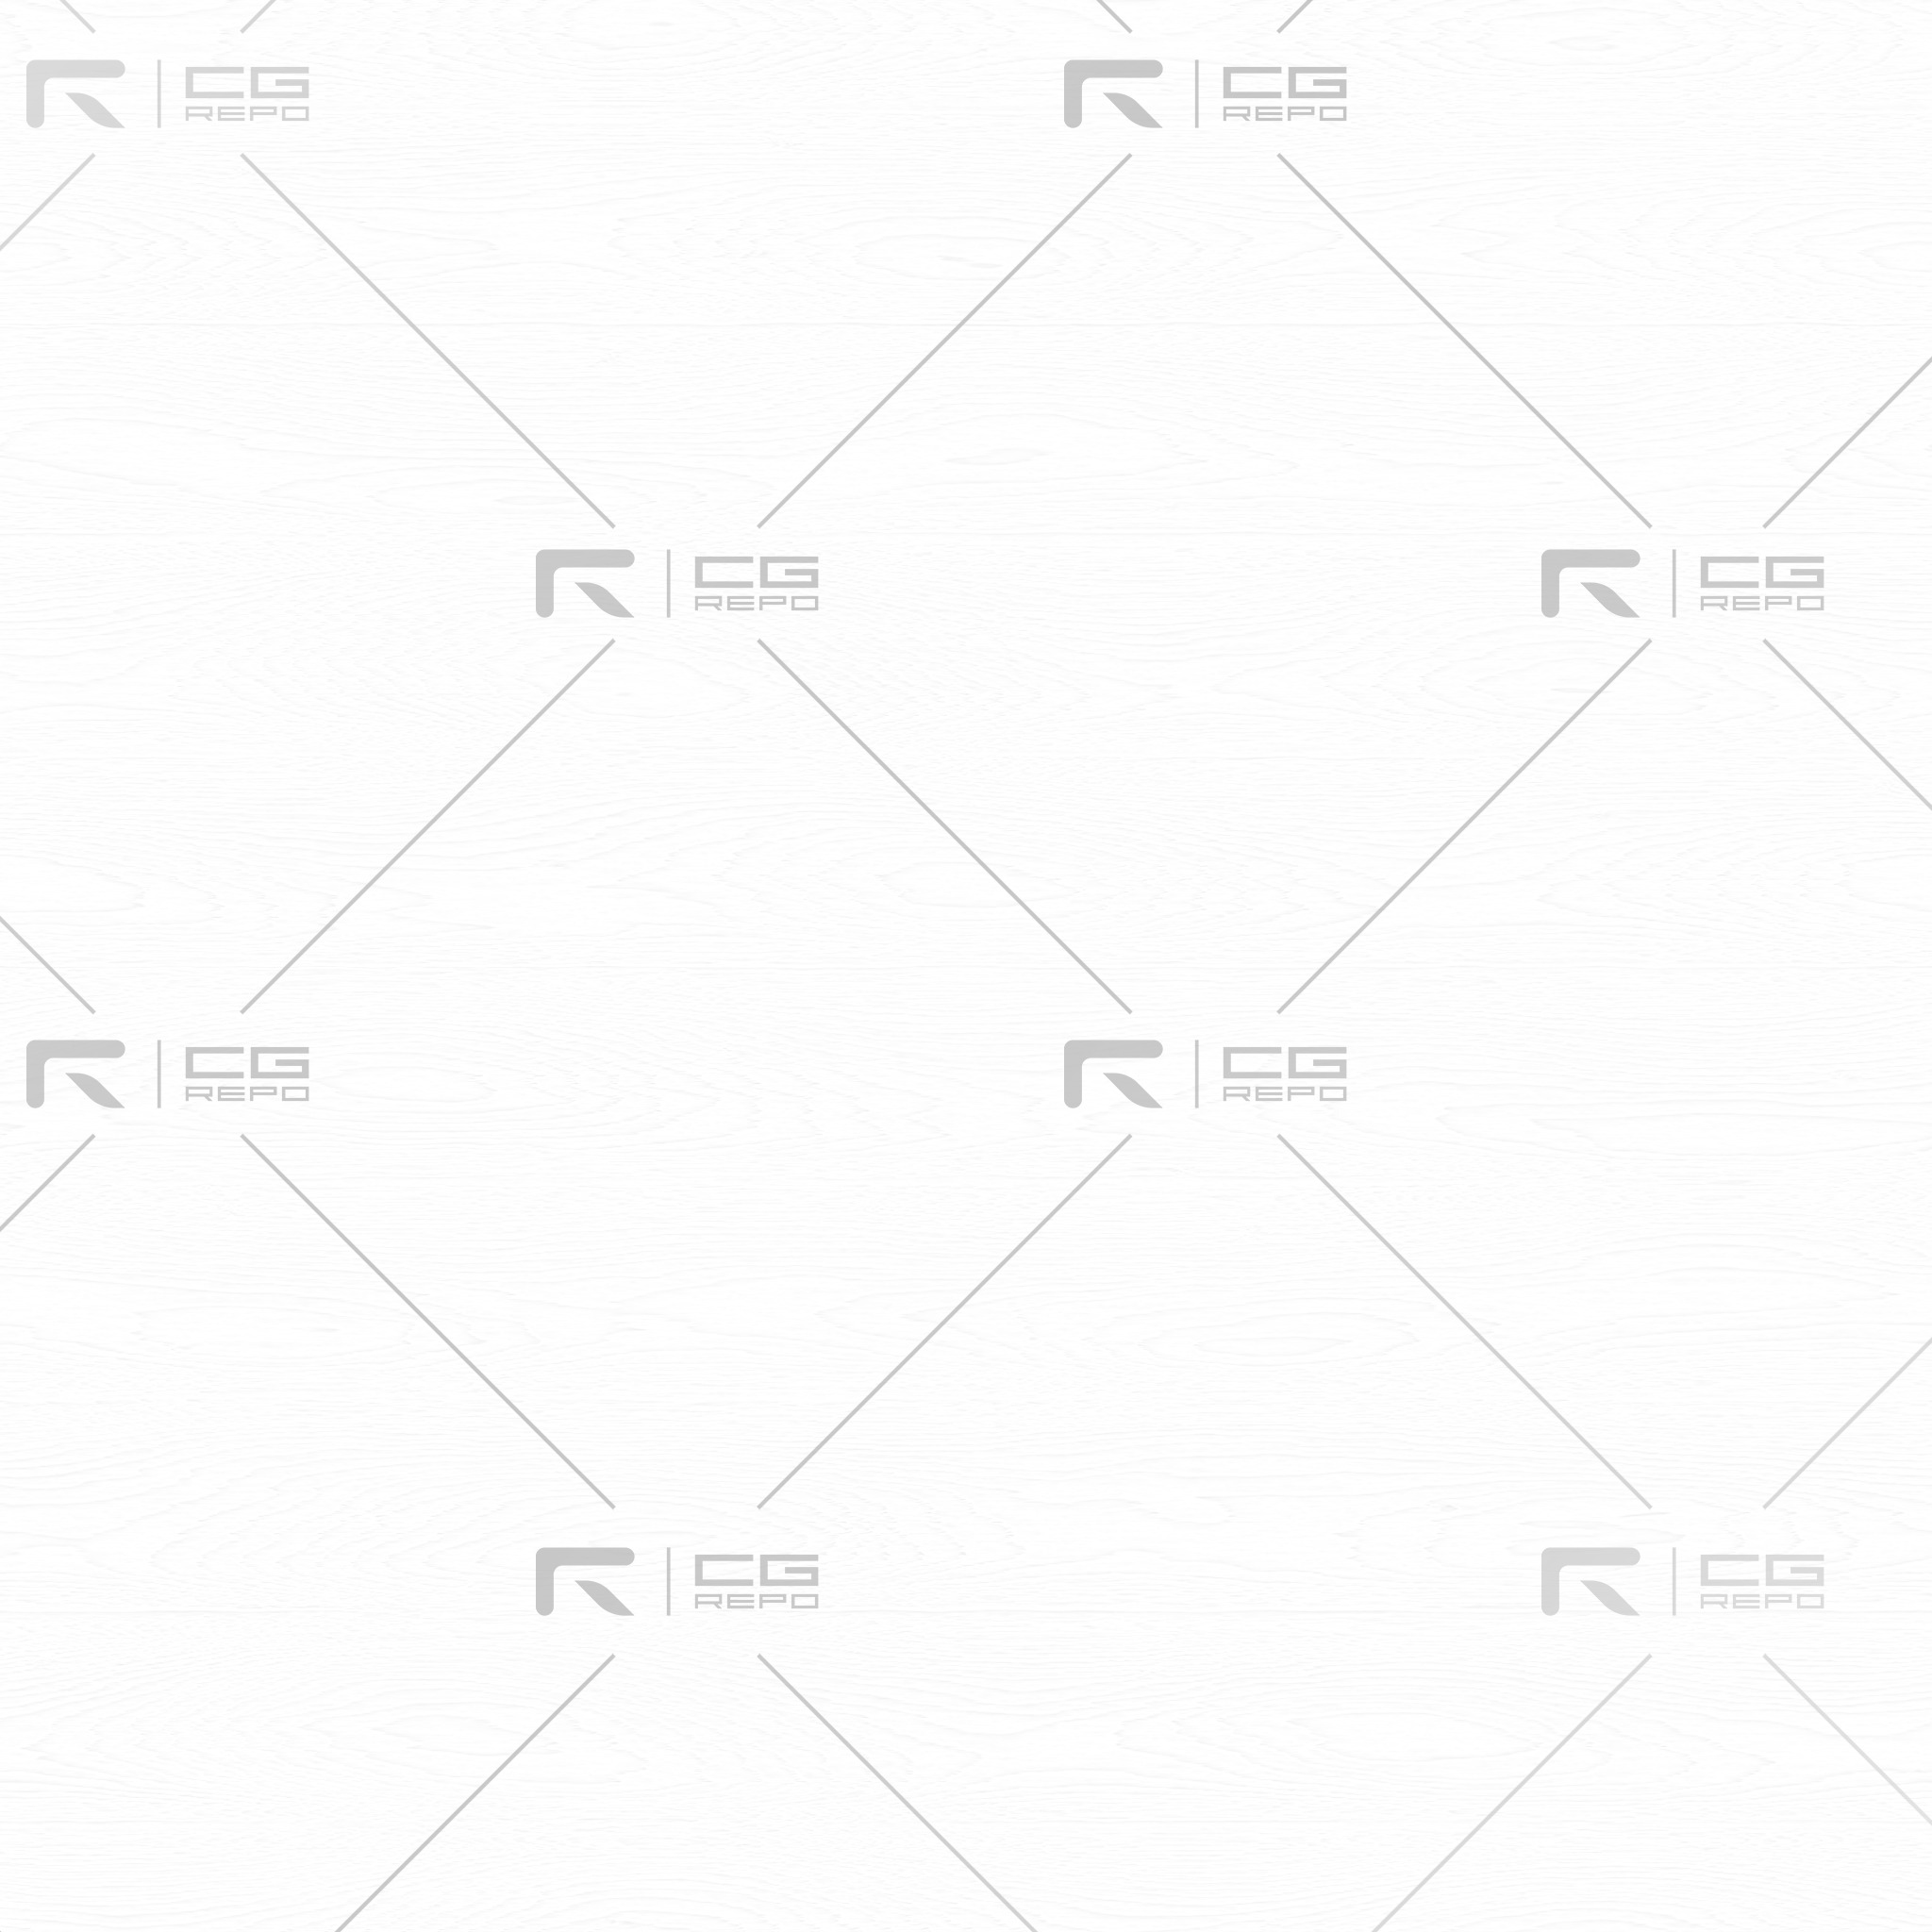 Oak - Painted Grunge Grey - Cathedral Shape Ambient Occlusion Texture